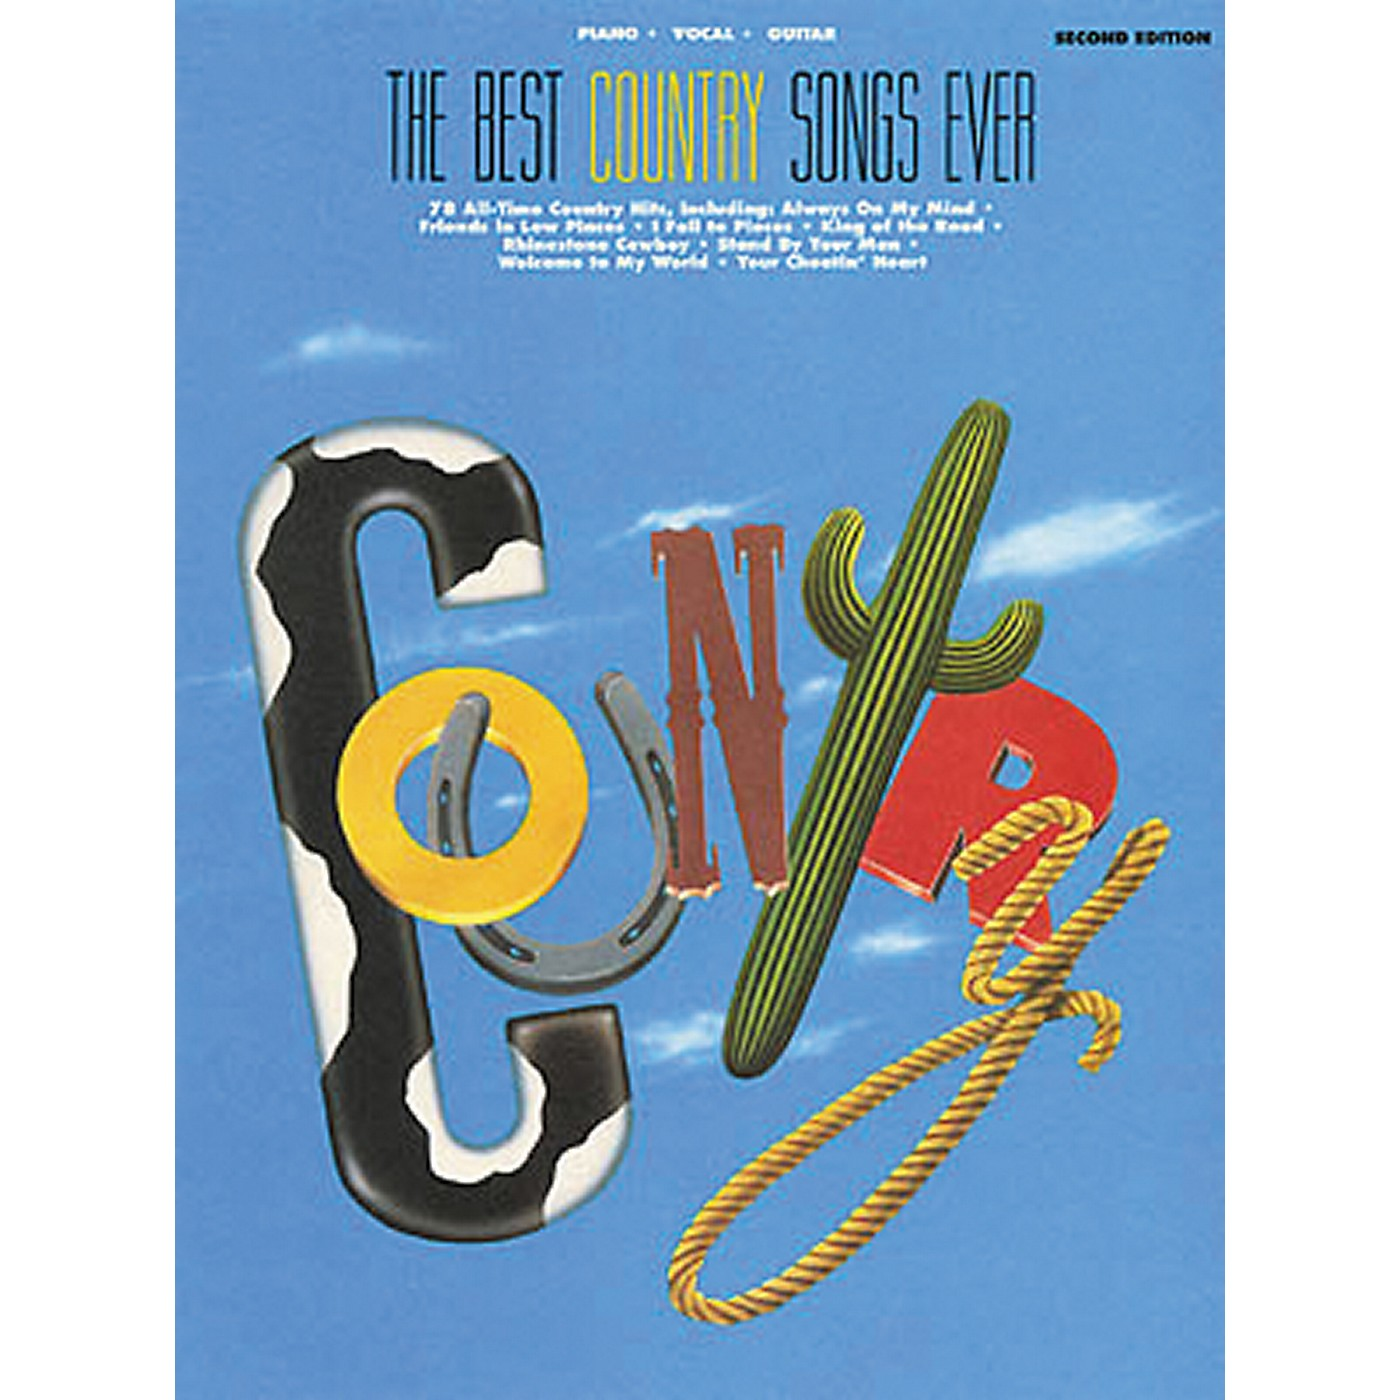 Hal Leonard The Best Country Songs Ever 2nd Edition Piano, Vocal, Guitar Songbook thumbnail